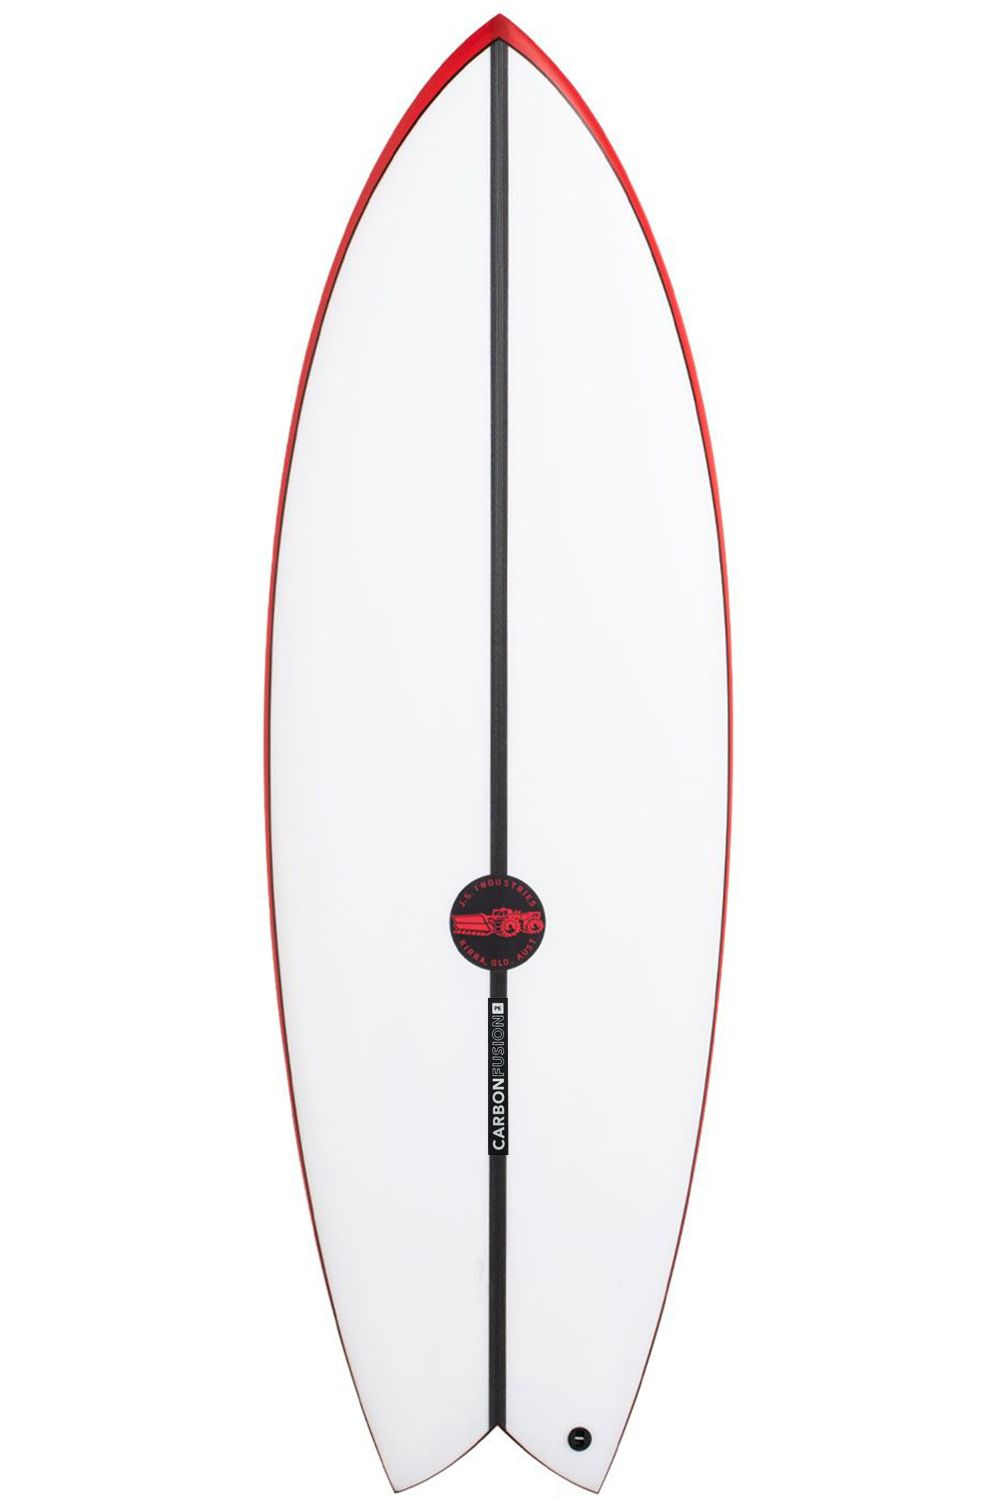 JS Surf Board 5'1 RED BARON SUMMER PE Swallow Tail - White FCS II Twin Tab 5ft1